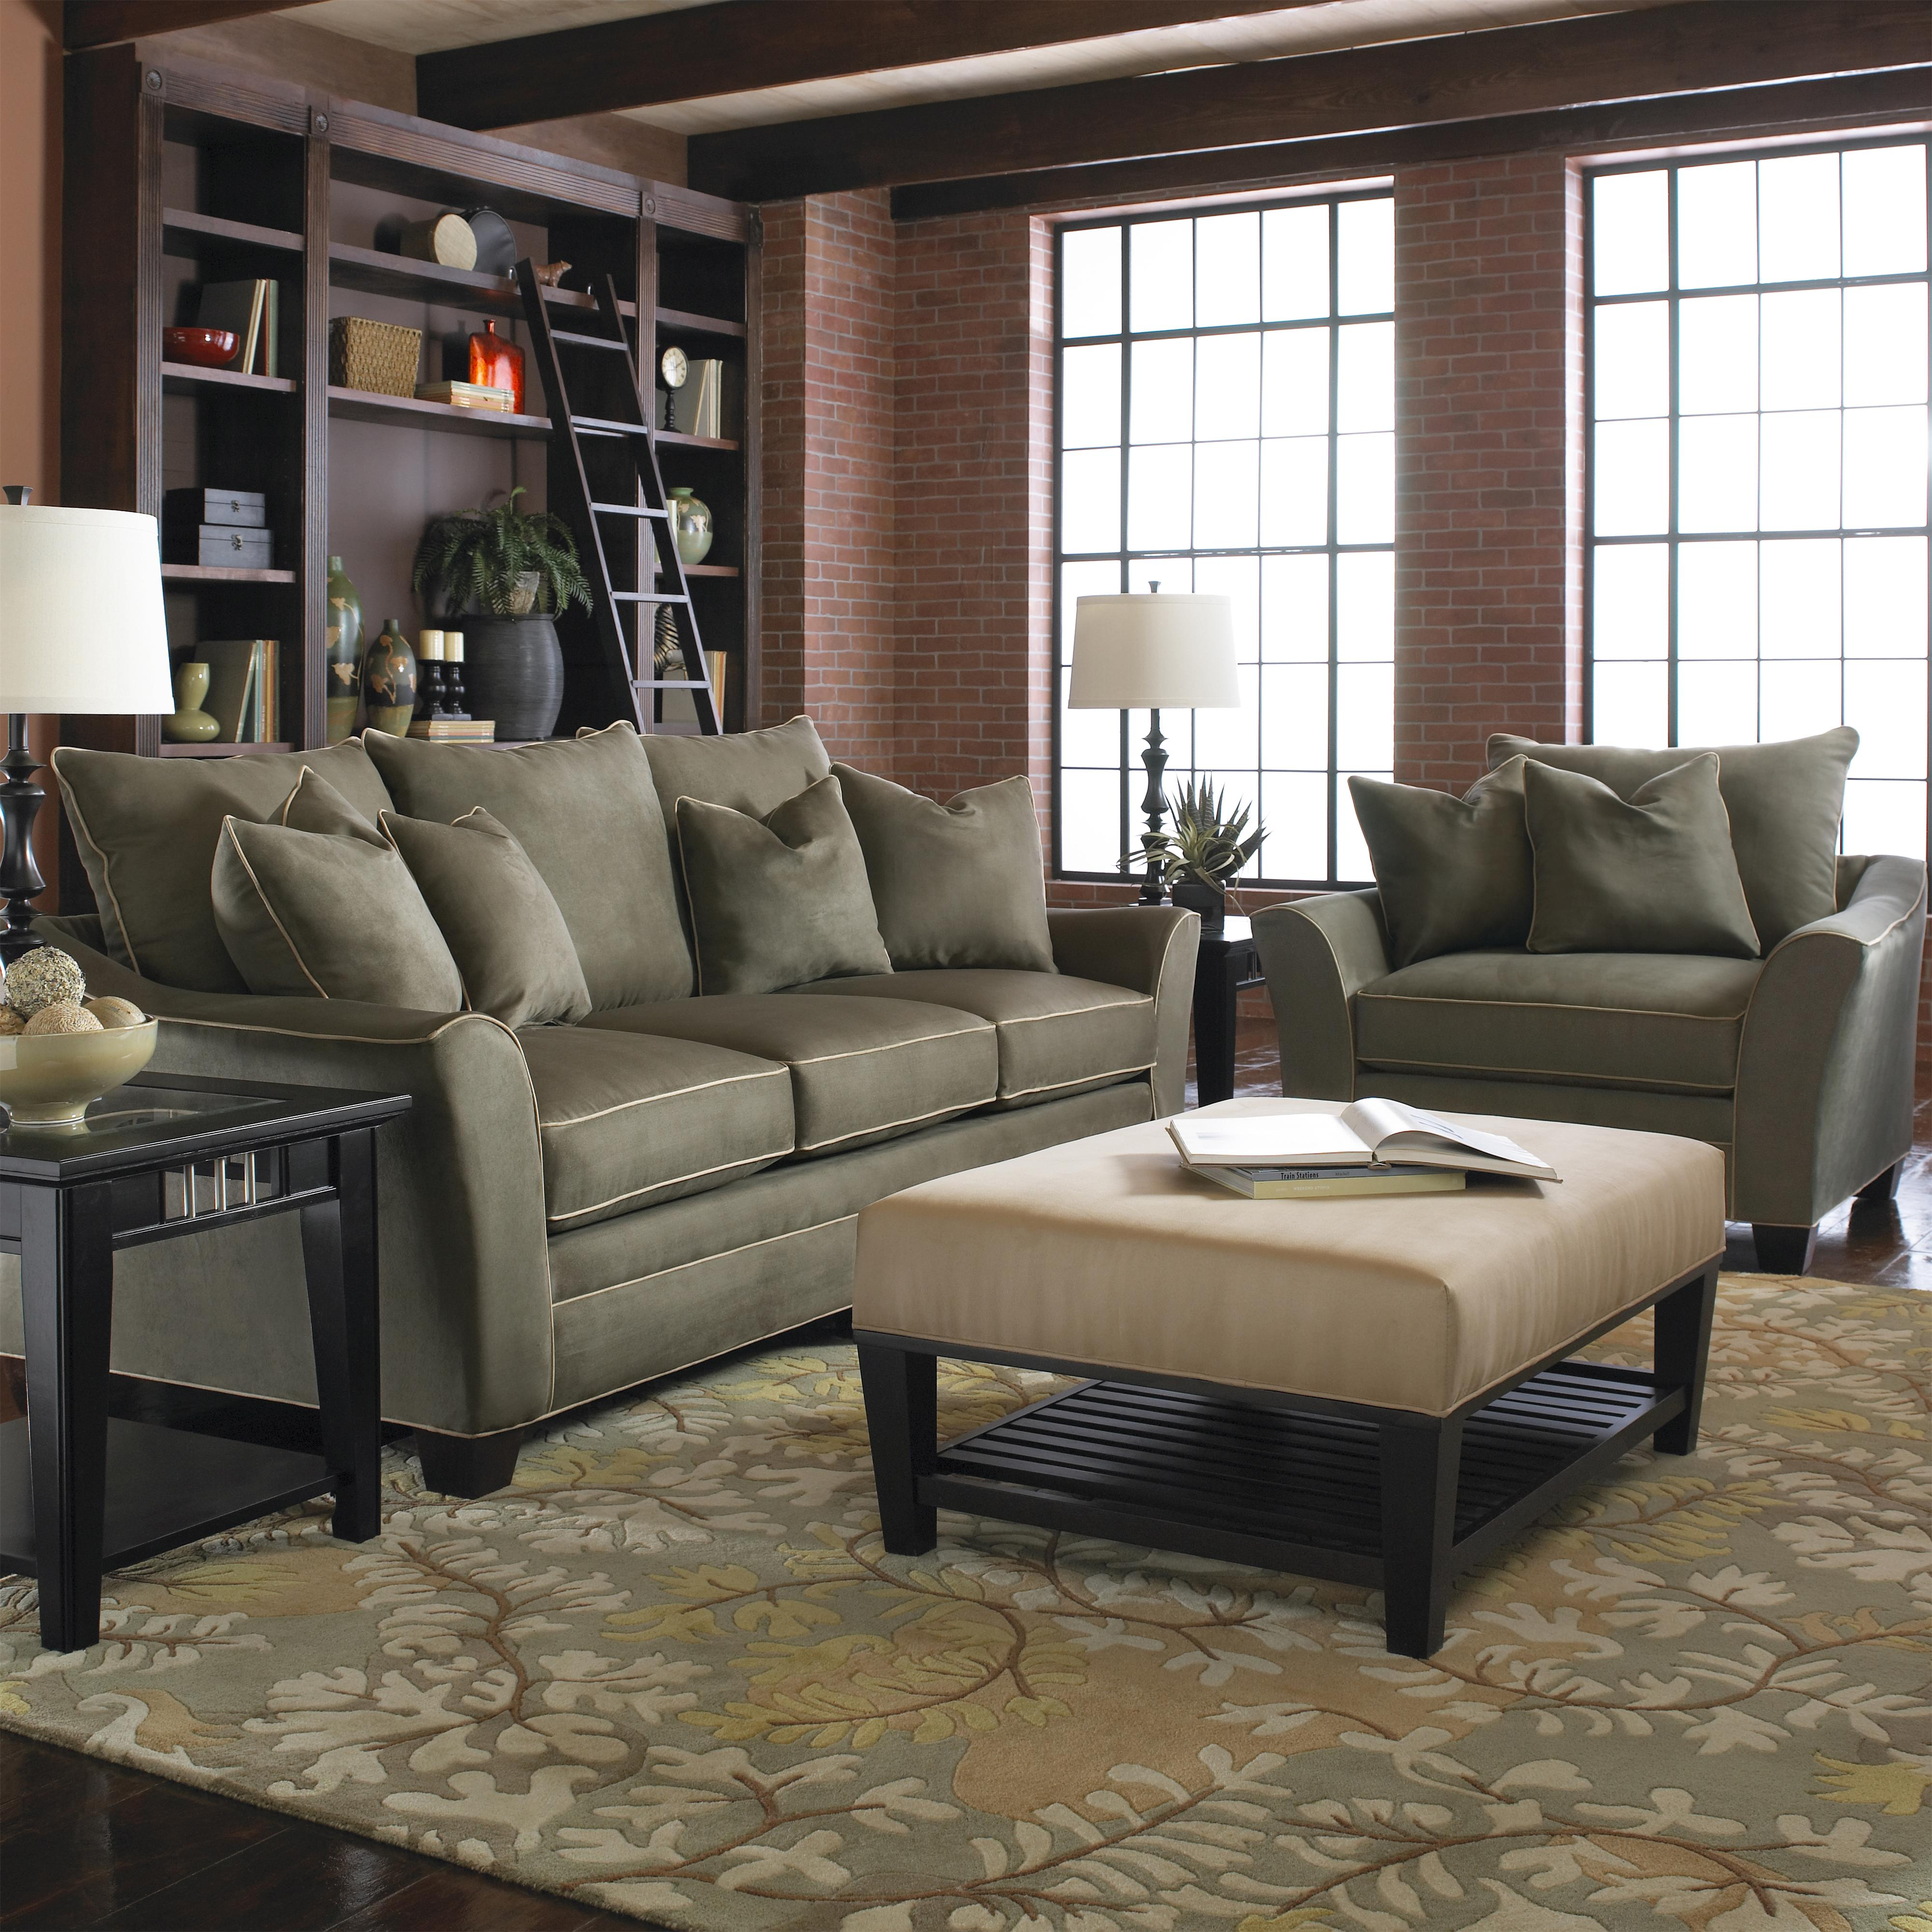 contemporary sofa with block feet by klaussner wolf and gardiner wolf furniture. Black Bedroom Furniture Sets. Home Design Ideas